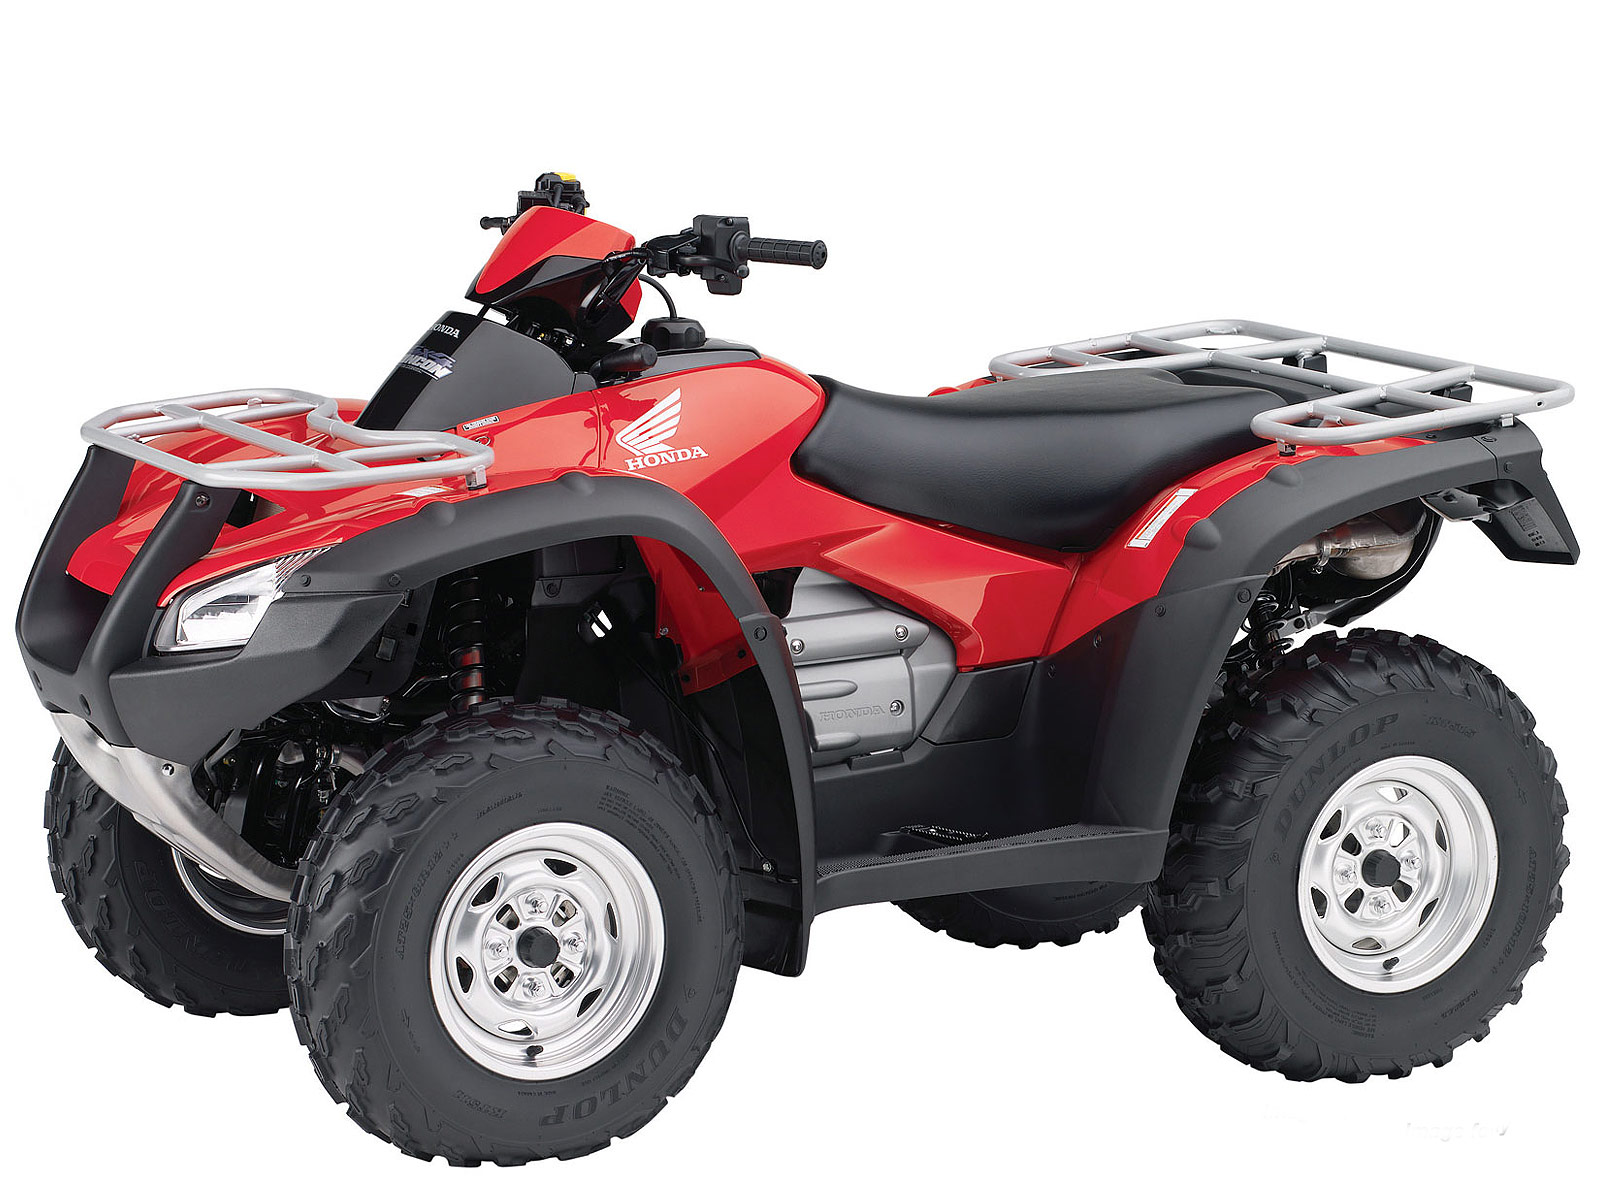 2011 Fourtrax Rincon Trx680fa Honda Atv Pictures And Specs